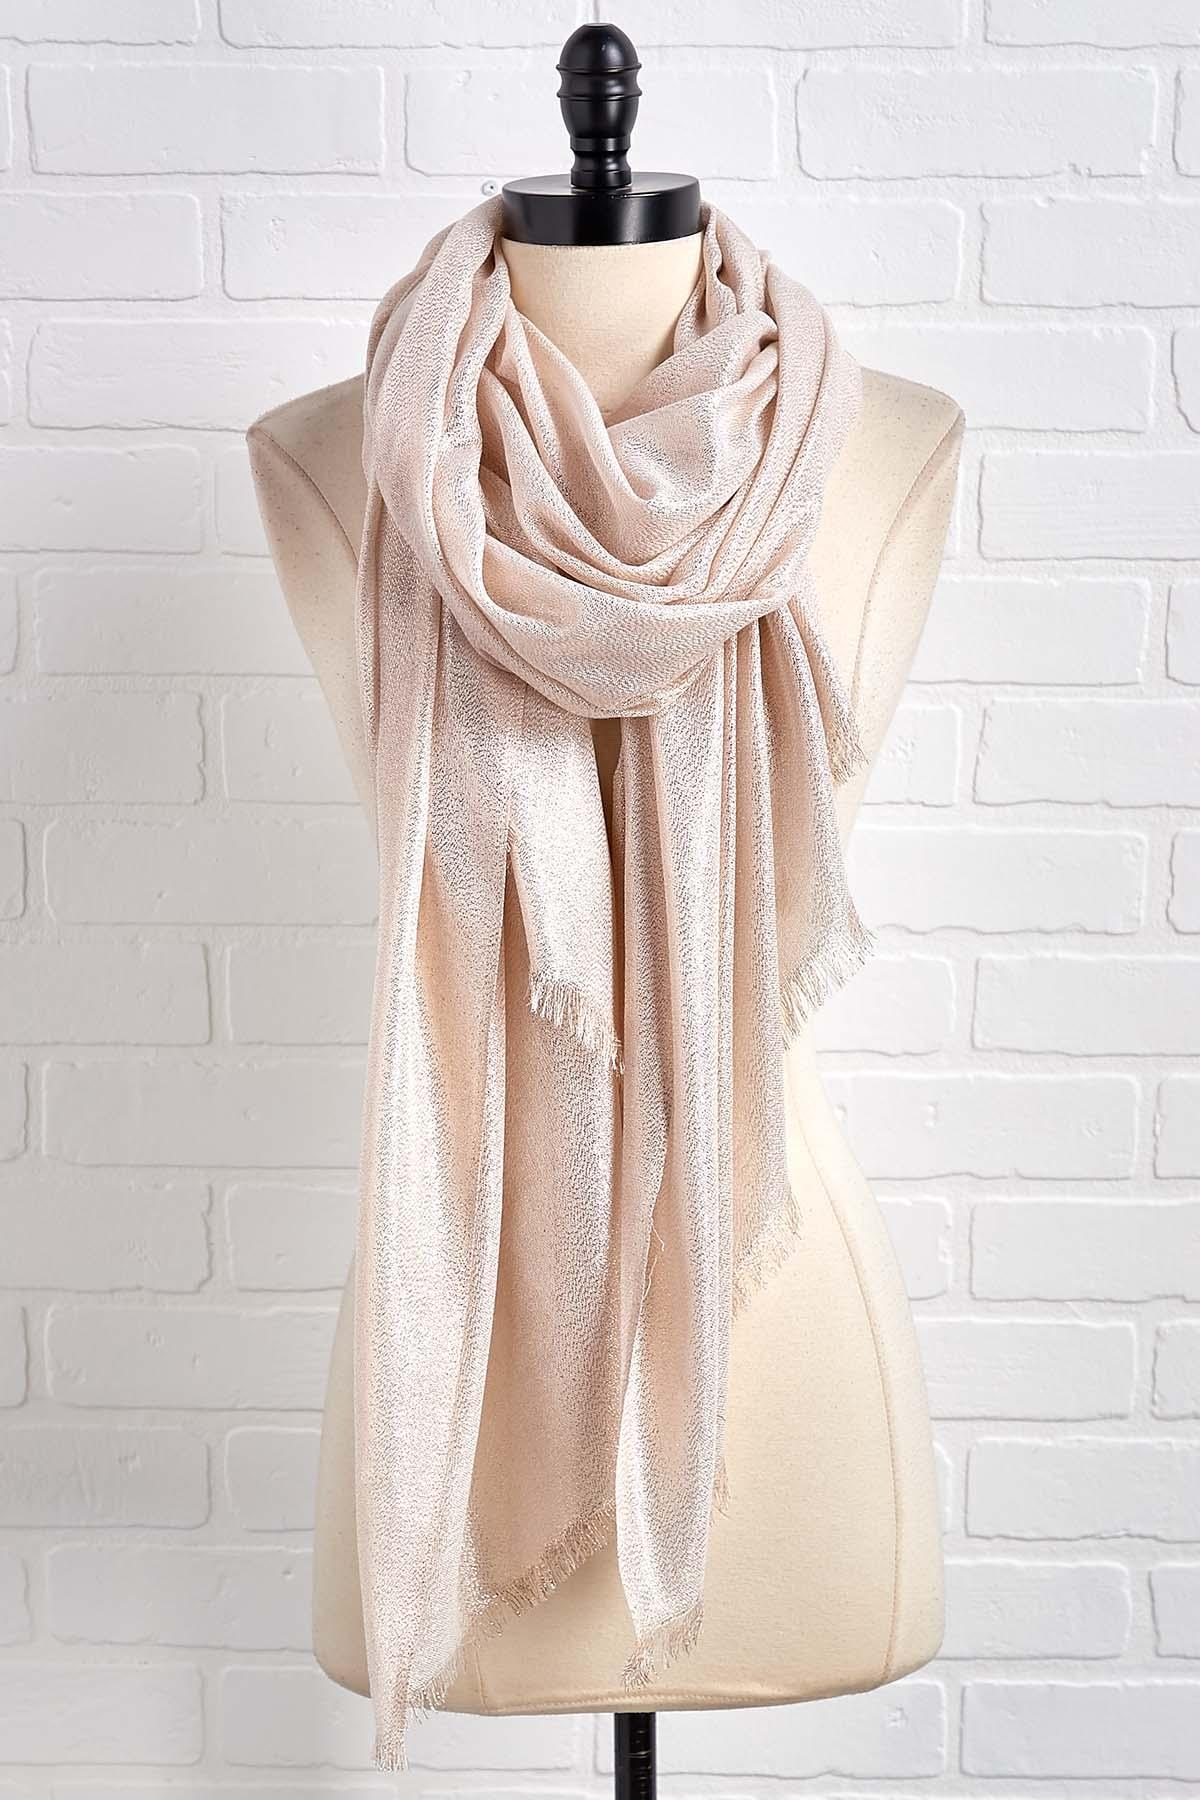 Gold And Glimmer Wrap